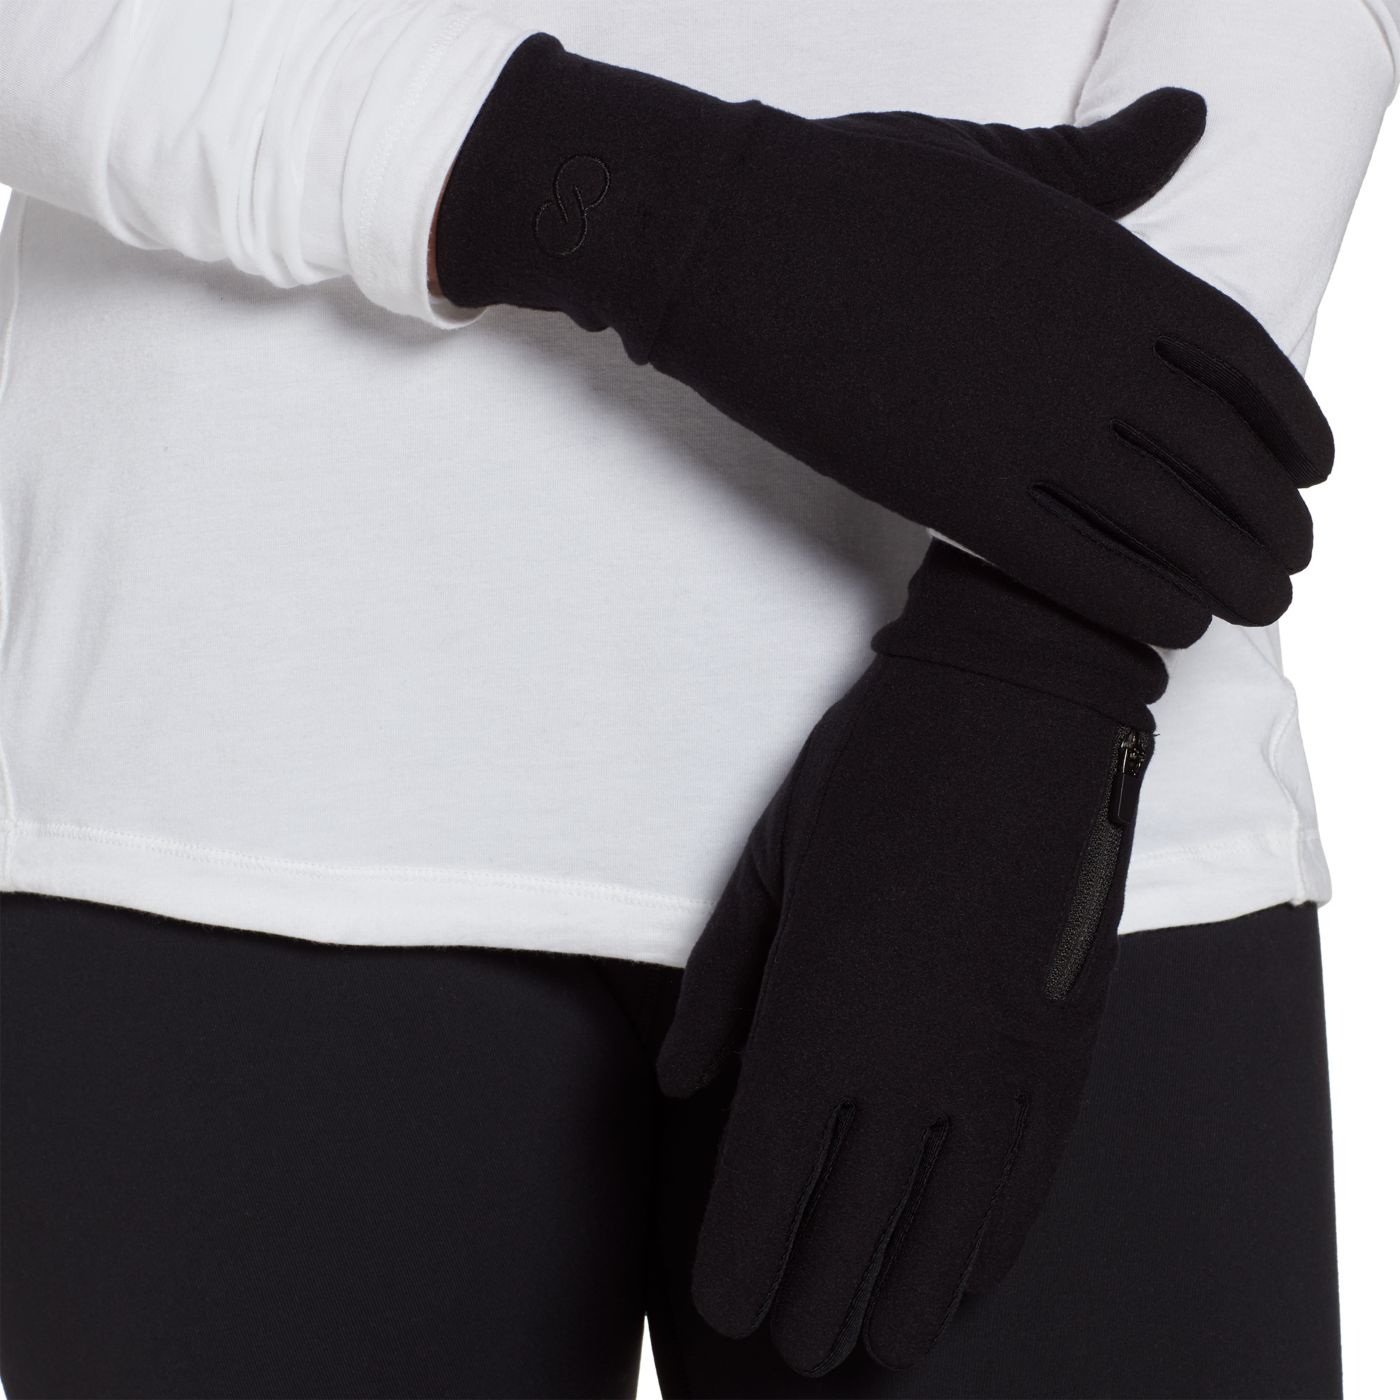 CALIA by Carrie Underwood Women's Performance Gloves